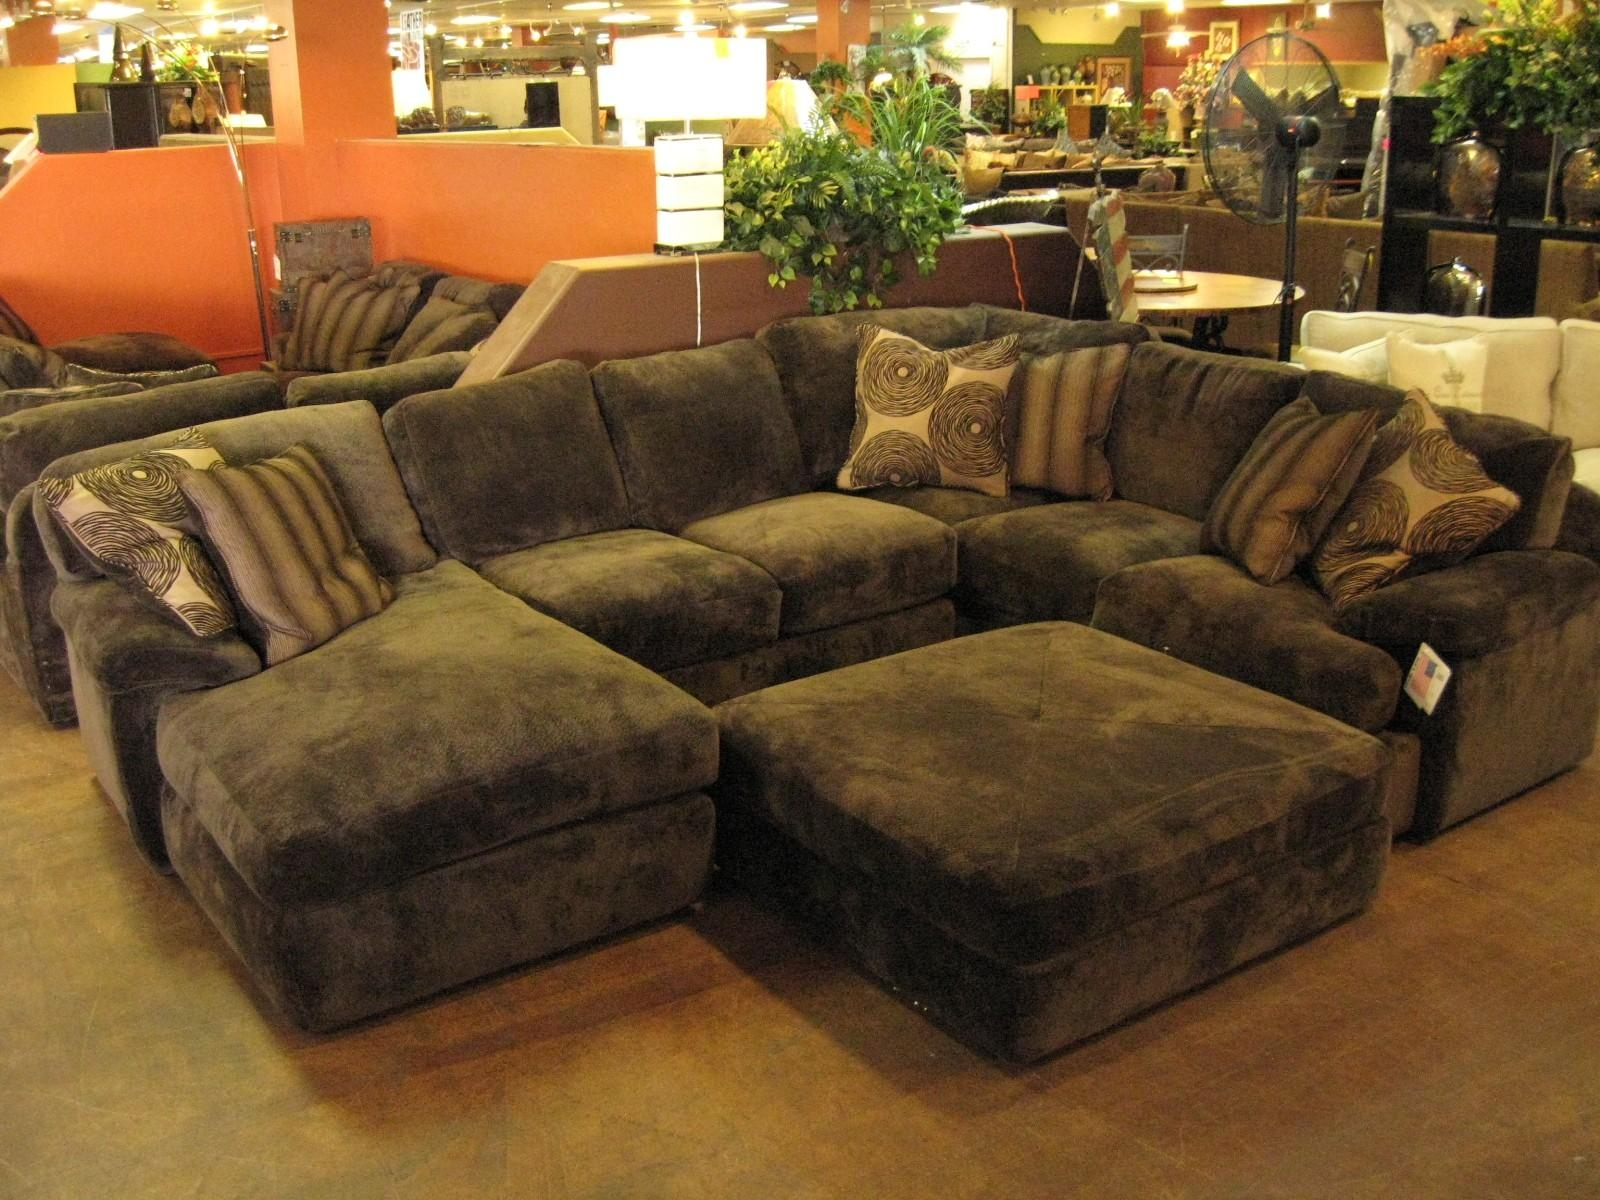 Ottoman Sectional Sofa Living Room – Ftfpgh With Sofa With Chaise And Ottoman (Image 10 of 20)